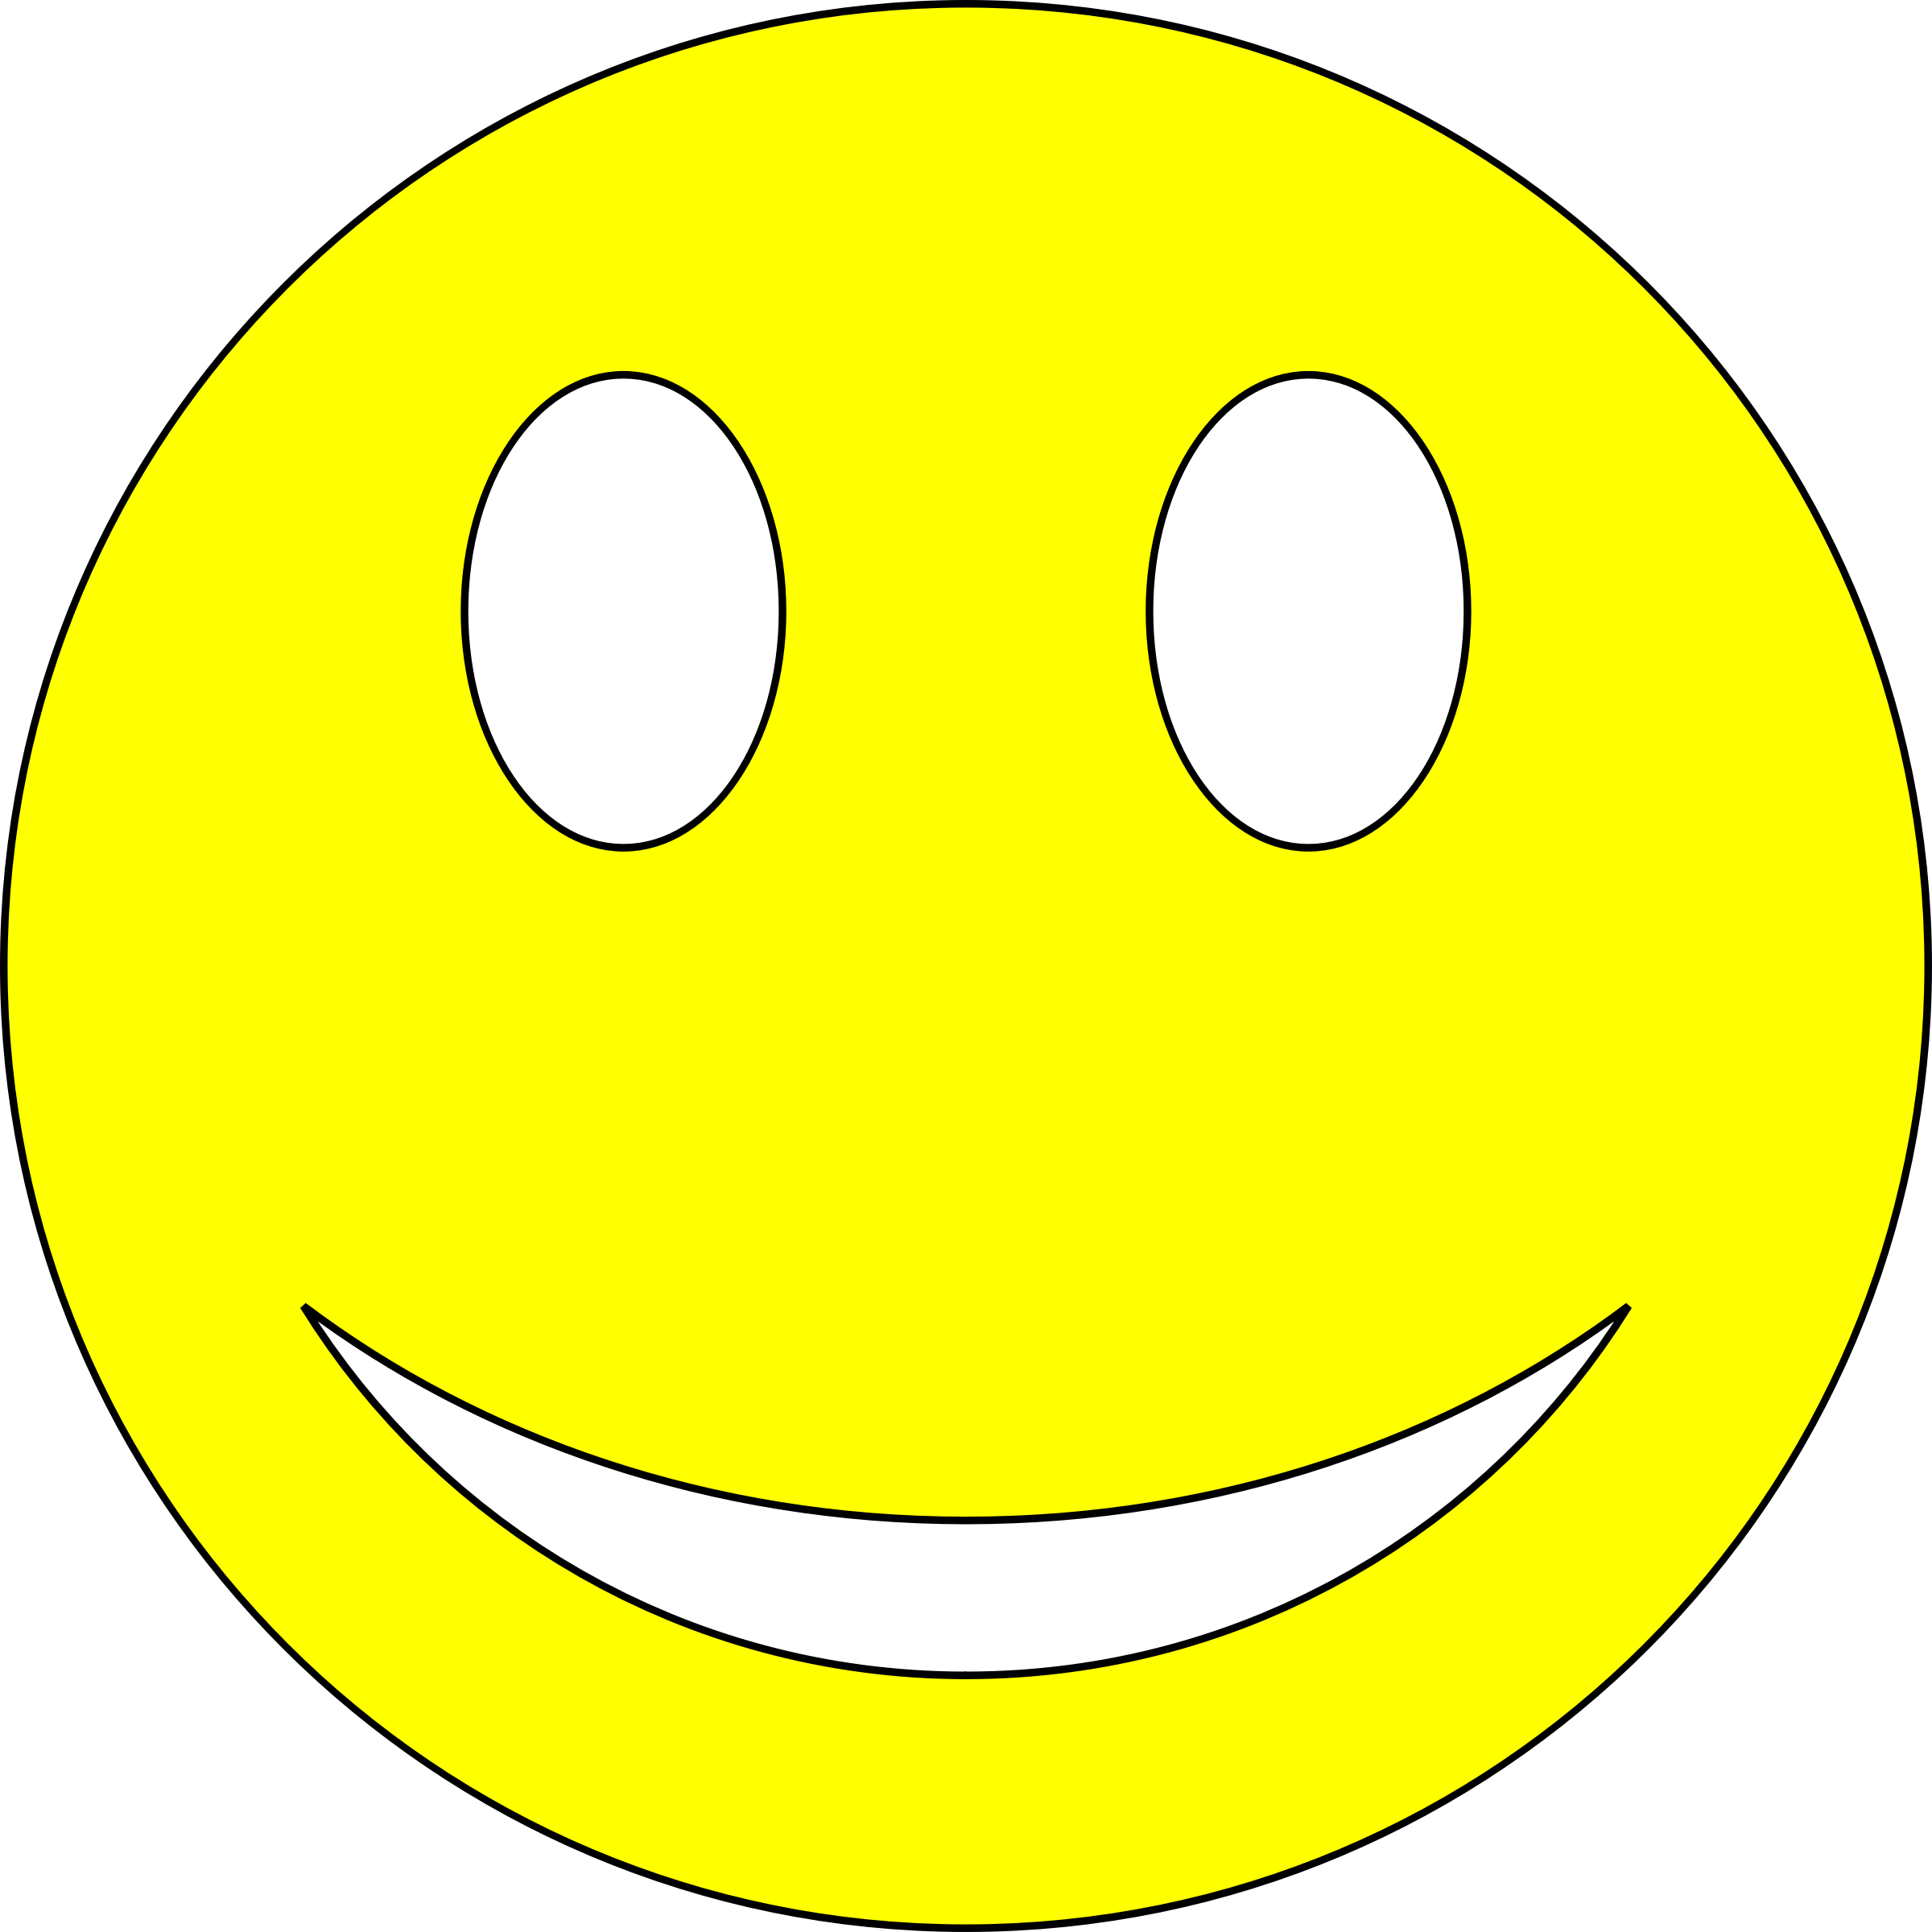 Smiley clipart study. Yellow big image png